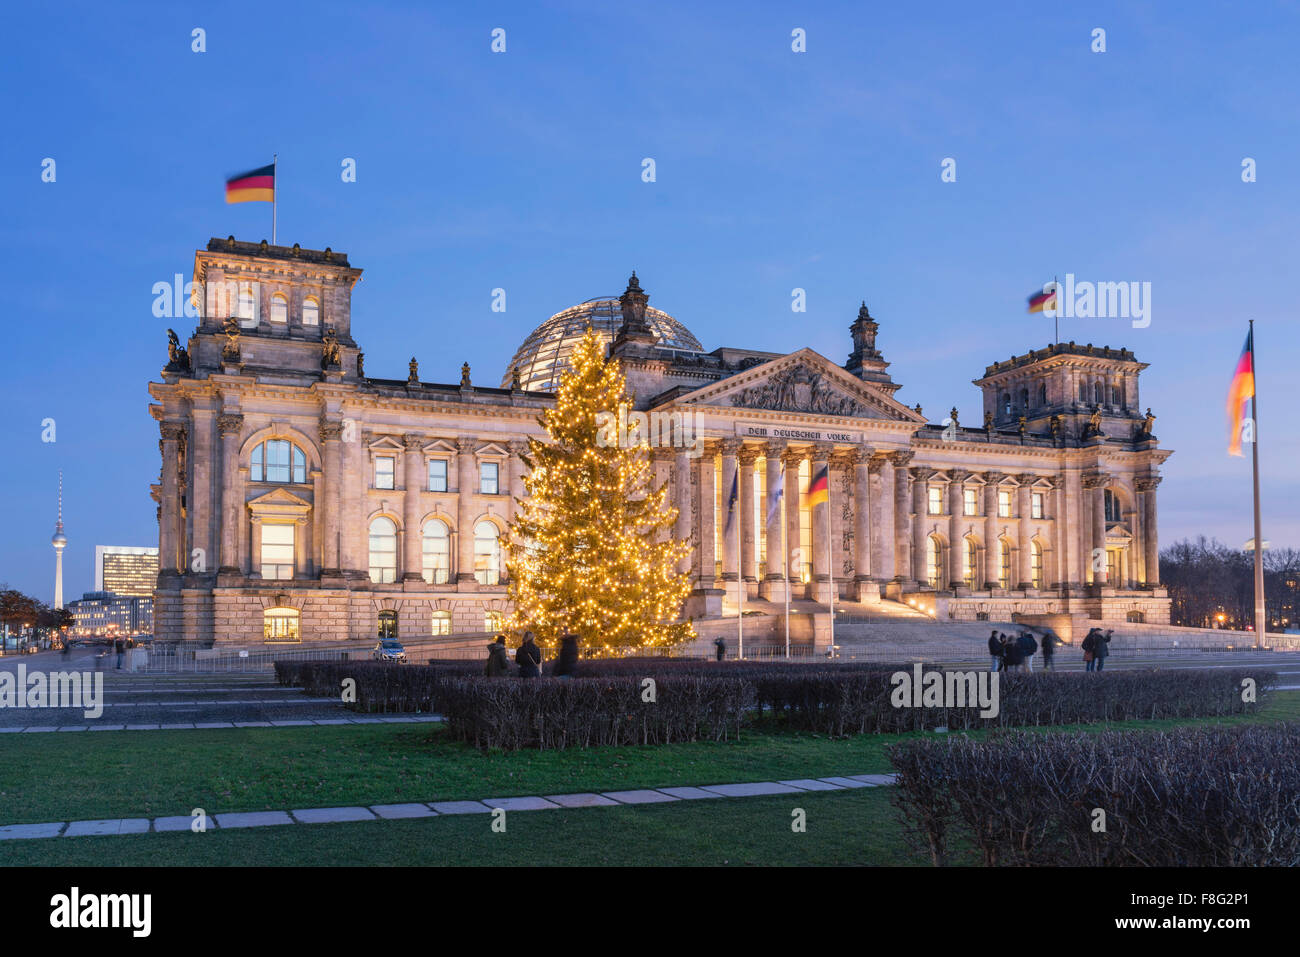 Arbre de Noël, du Reichstag, Berlin, Allemagne Photo Stock